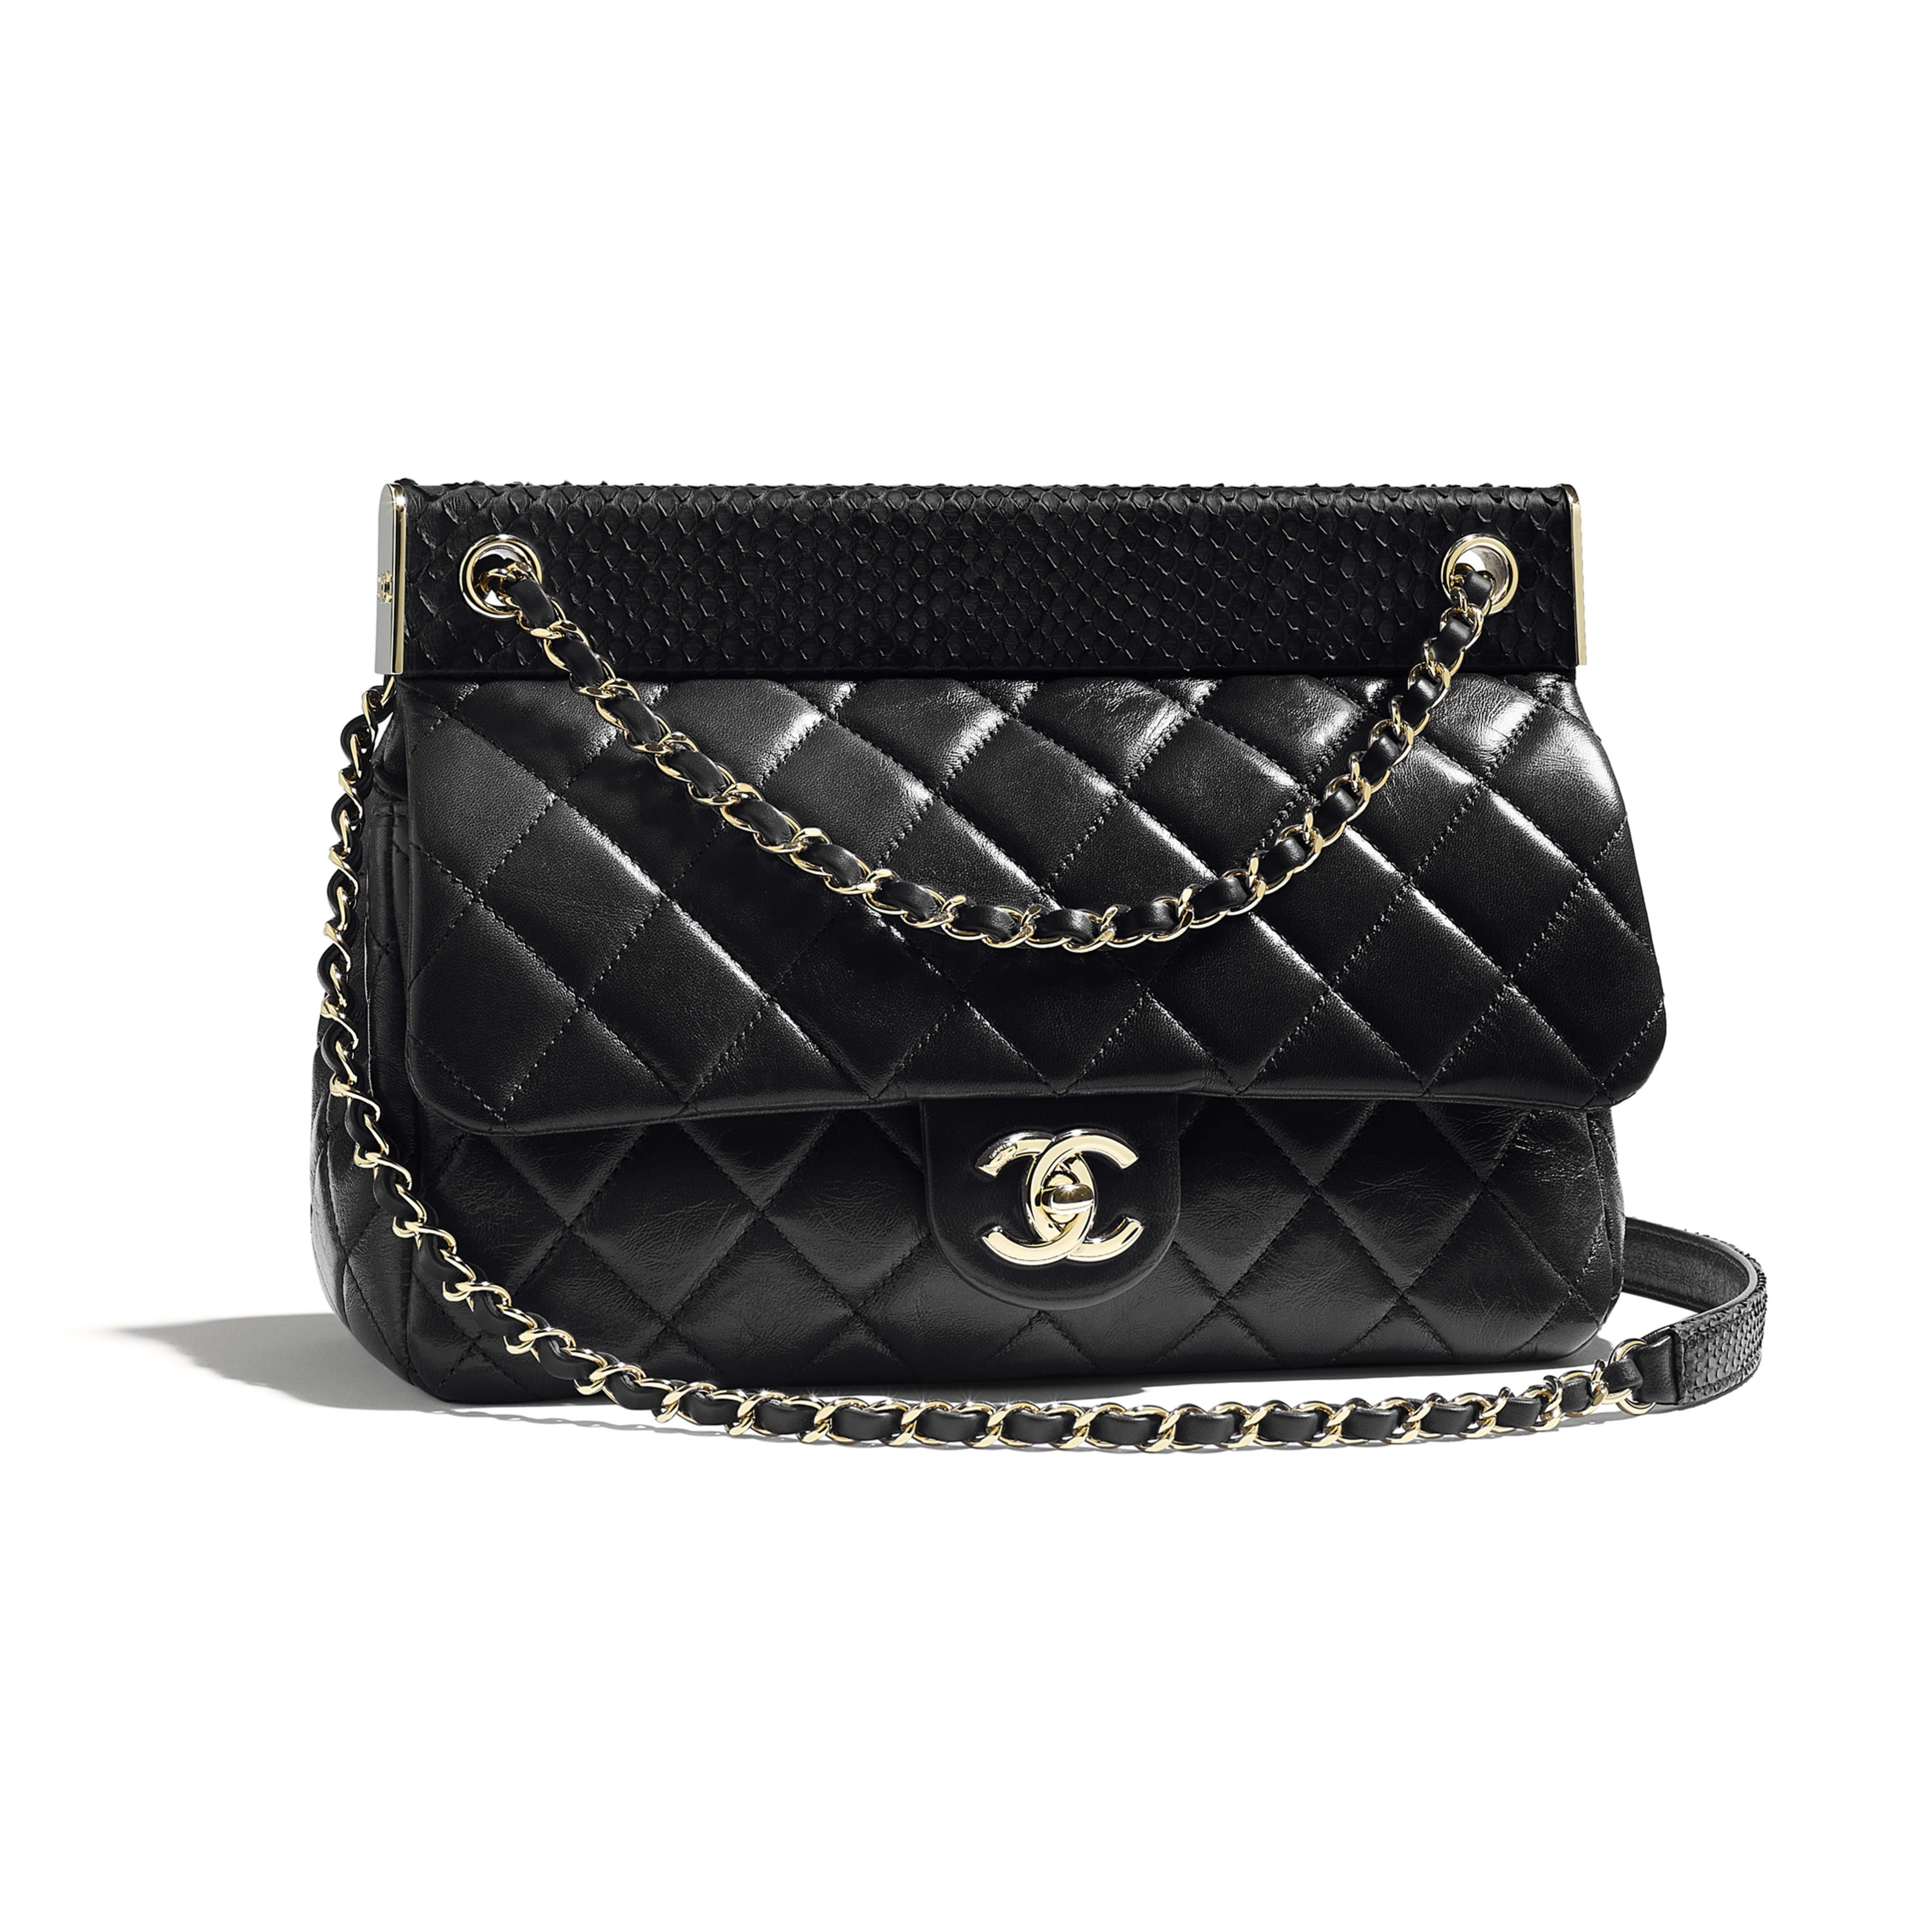 906c8ad4a9c453 Flap Bag Lambskin, Python & Gold-Tone Metal Black - view 1 - see full sized  version